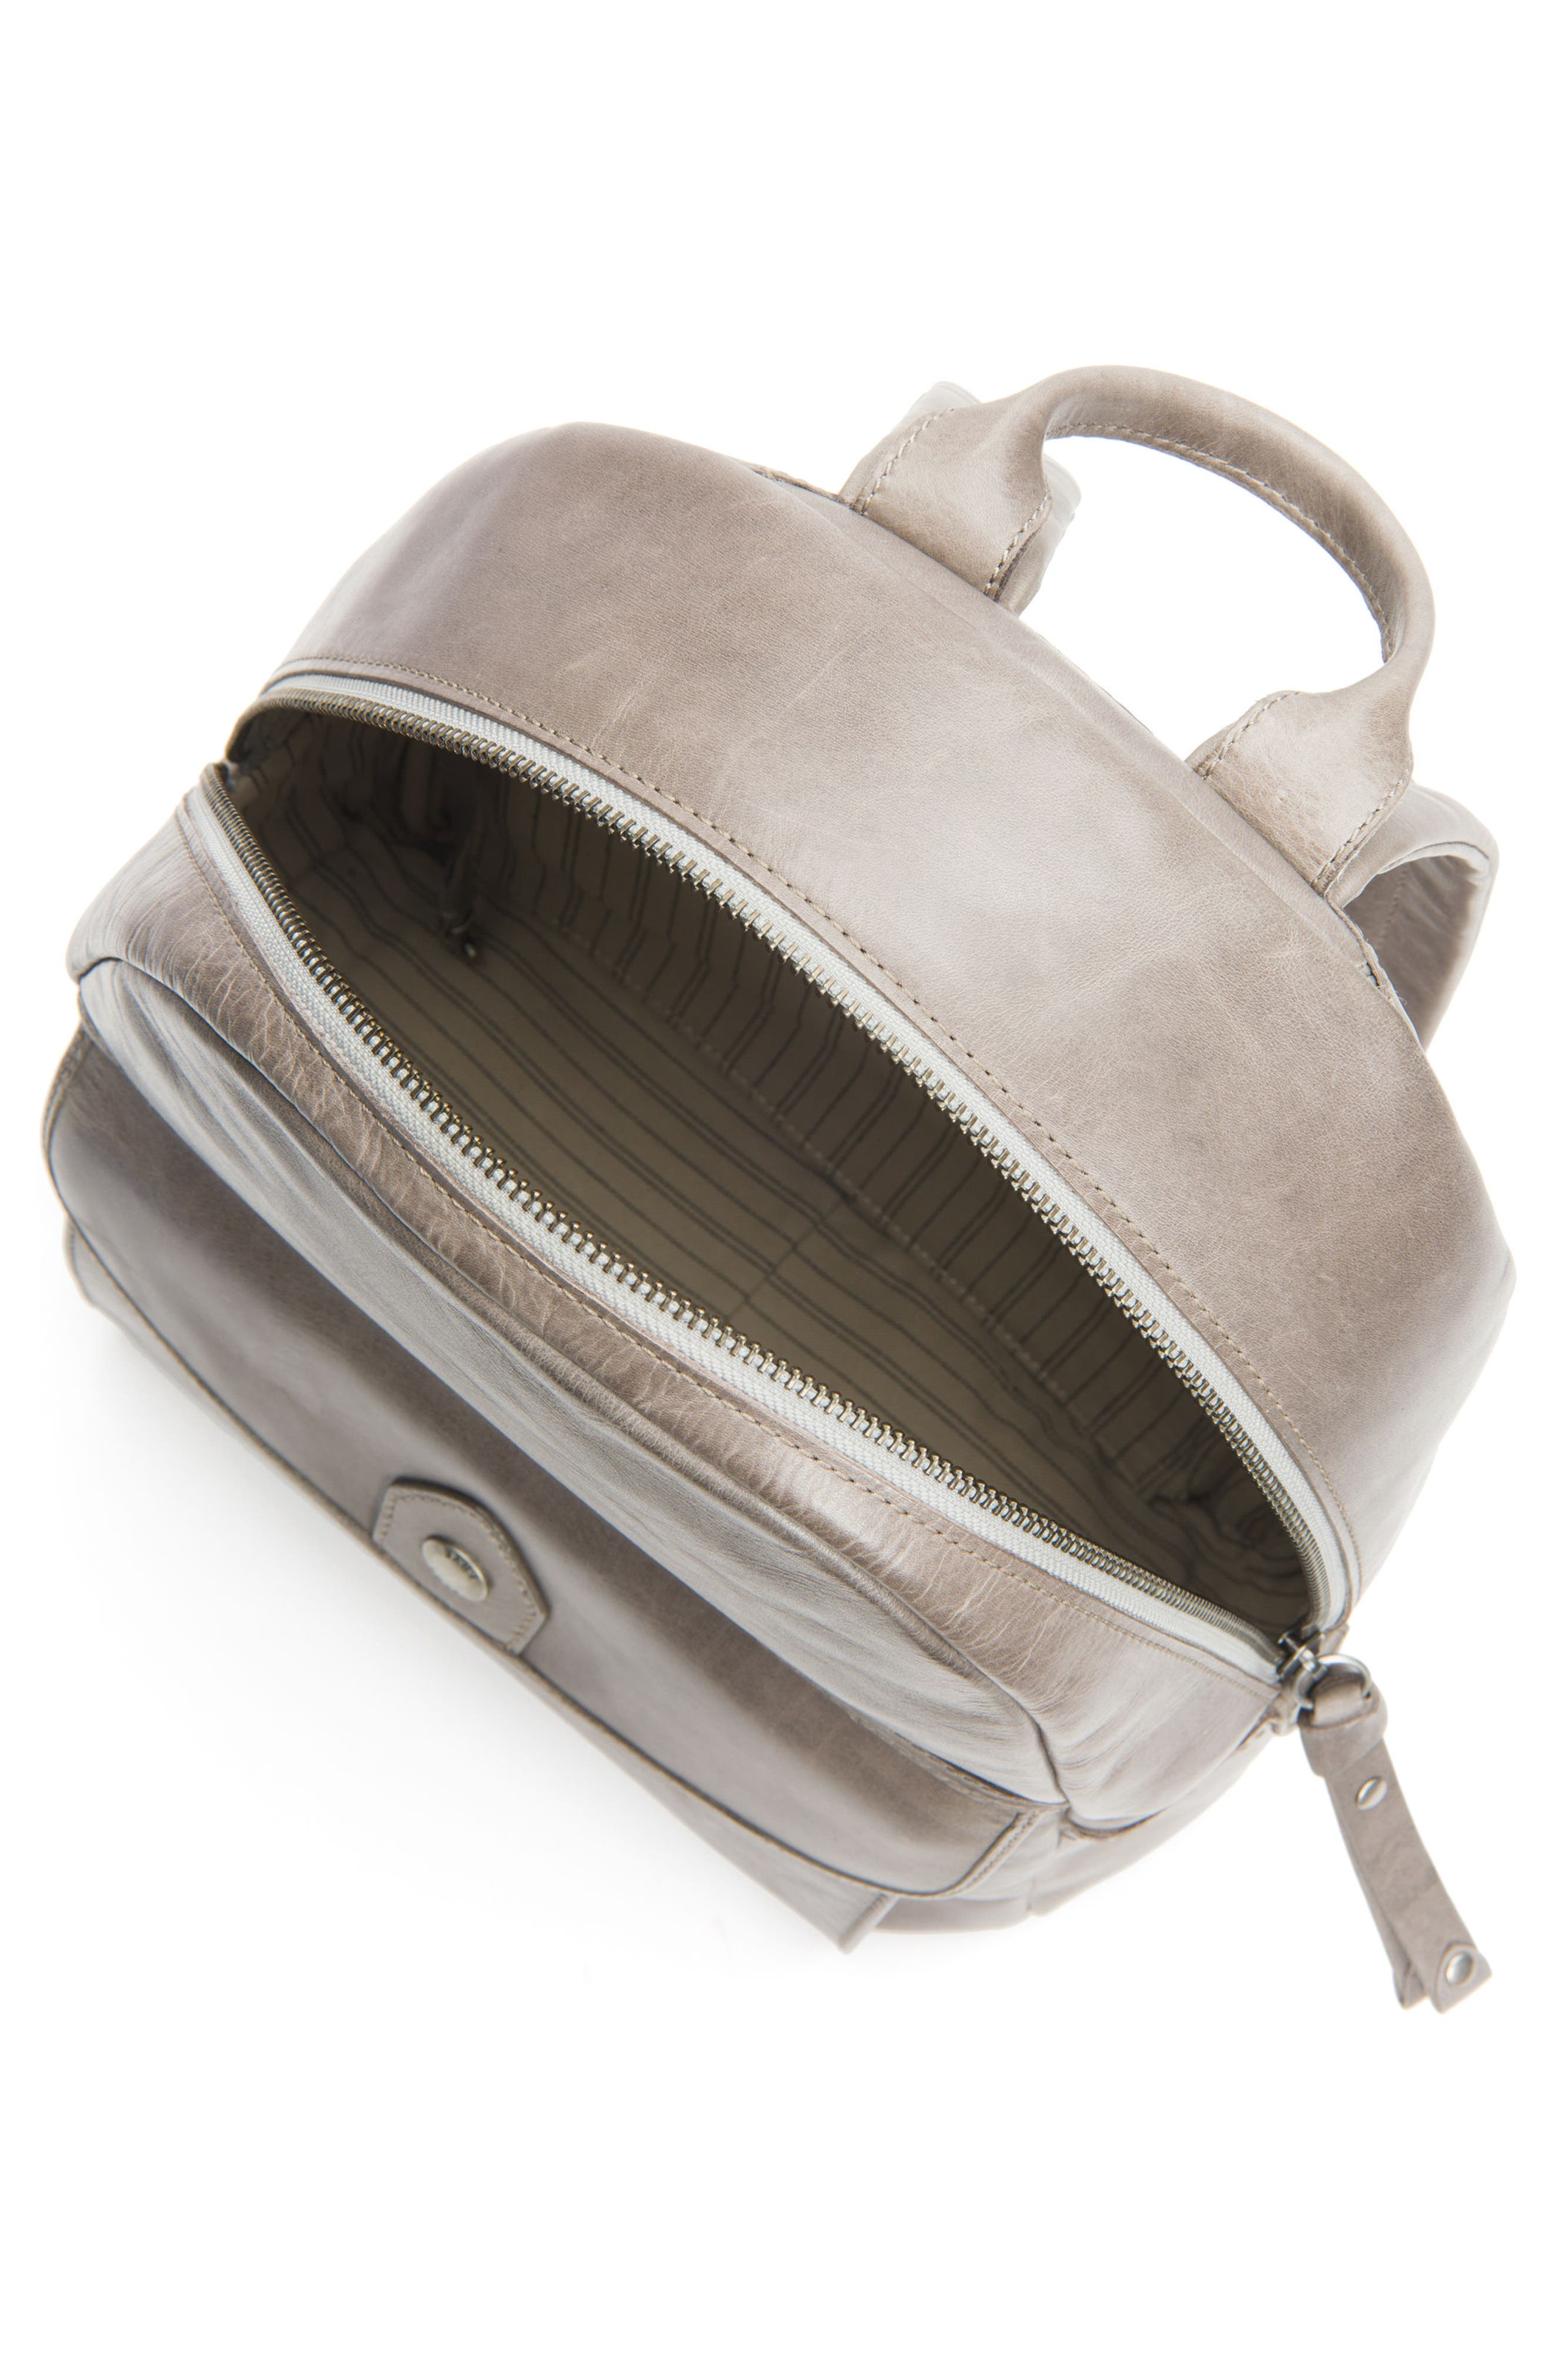 Melissa Leather Backpack,                             Alternate thumbnail 4, color,                             020